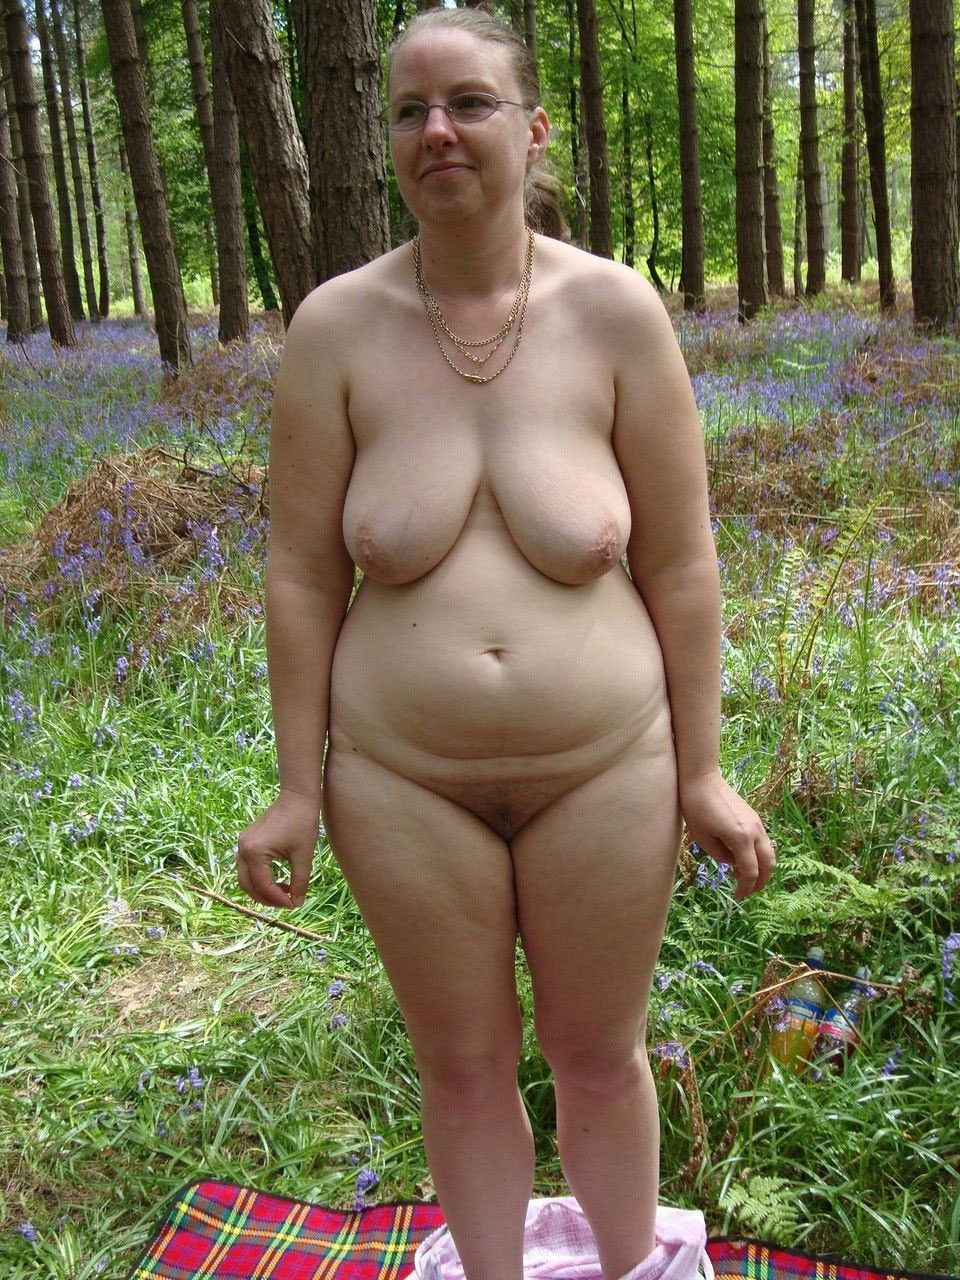 Chubby Nudist Girls - Funny and chubby young nudist girls